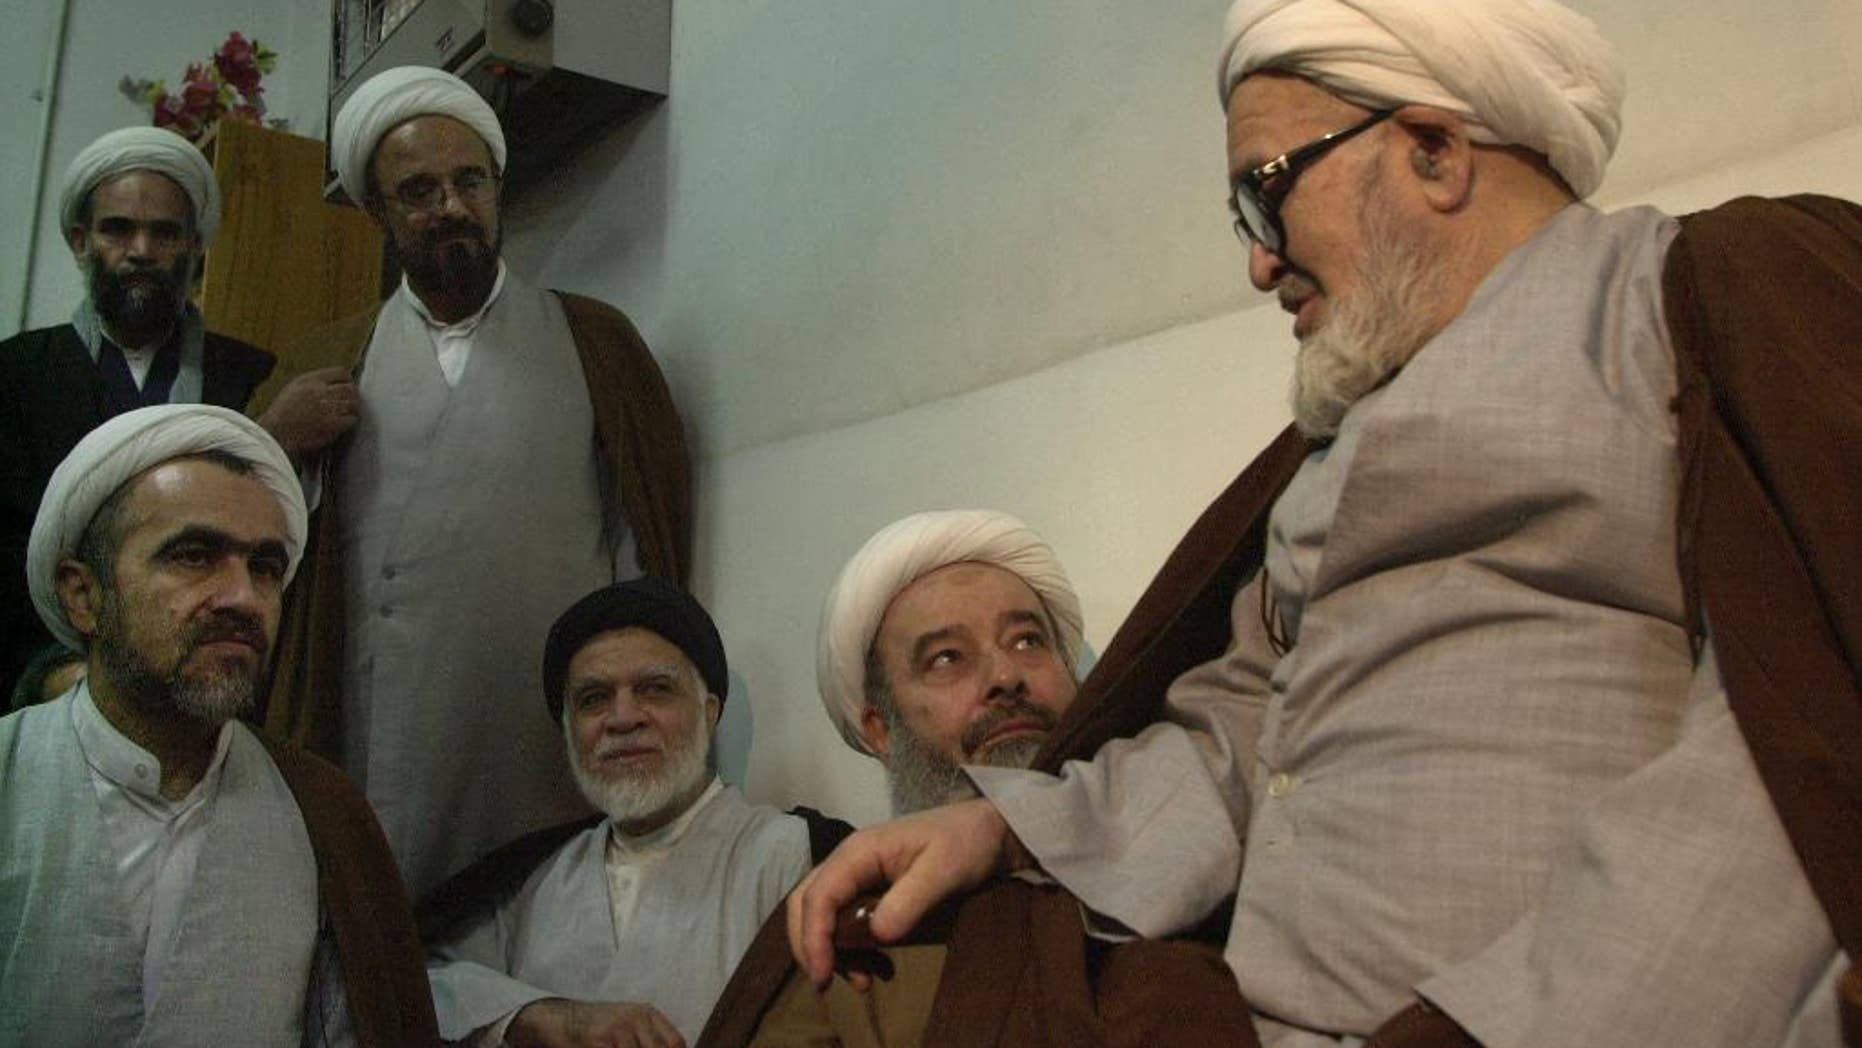 FILE -- In this Jan. 30, 2003 file photo, Grand Ayatollah Hossein Ali Montazeri, Iran's most-senior dissident cleric, right, talks to clerics and his son Ahmad, left, in Qom, 78 miles (125 kilometers) south of Tehran, Iran. Iran's semi-official Fars news agency reported Wednesday, Feb. 22, 2017 that Ahmad Montazeri, the son of late cleric Grand Ayatollah Hossein Ali Montazeri, has begun serving a six-year prison term. In November, 2016, a clerical court sentenced Ahmad Montazeri to six years in prison for publishing a tape recording of his father condemning the execution of thousands of prisoners in 1988 at the end of the country's protracted war with Iraq. (AP Photo/Vahid Salemi, File)